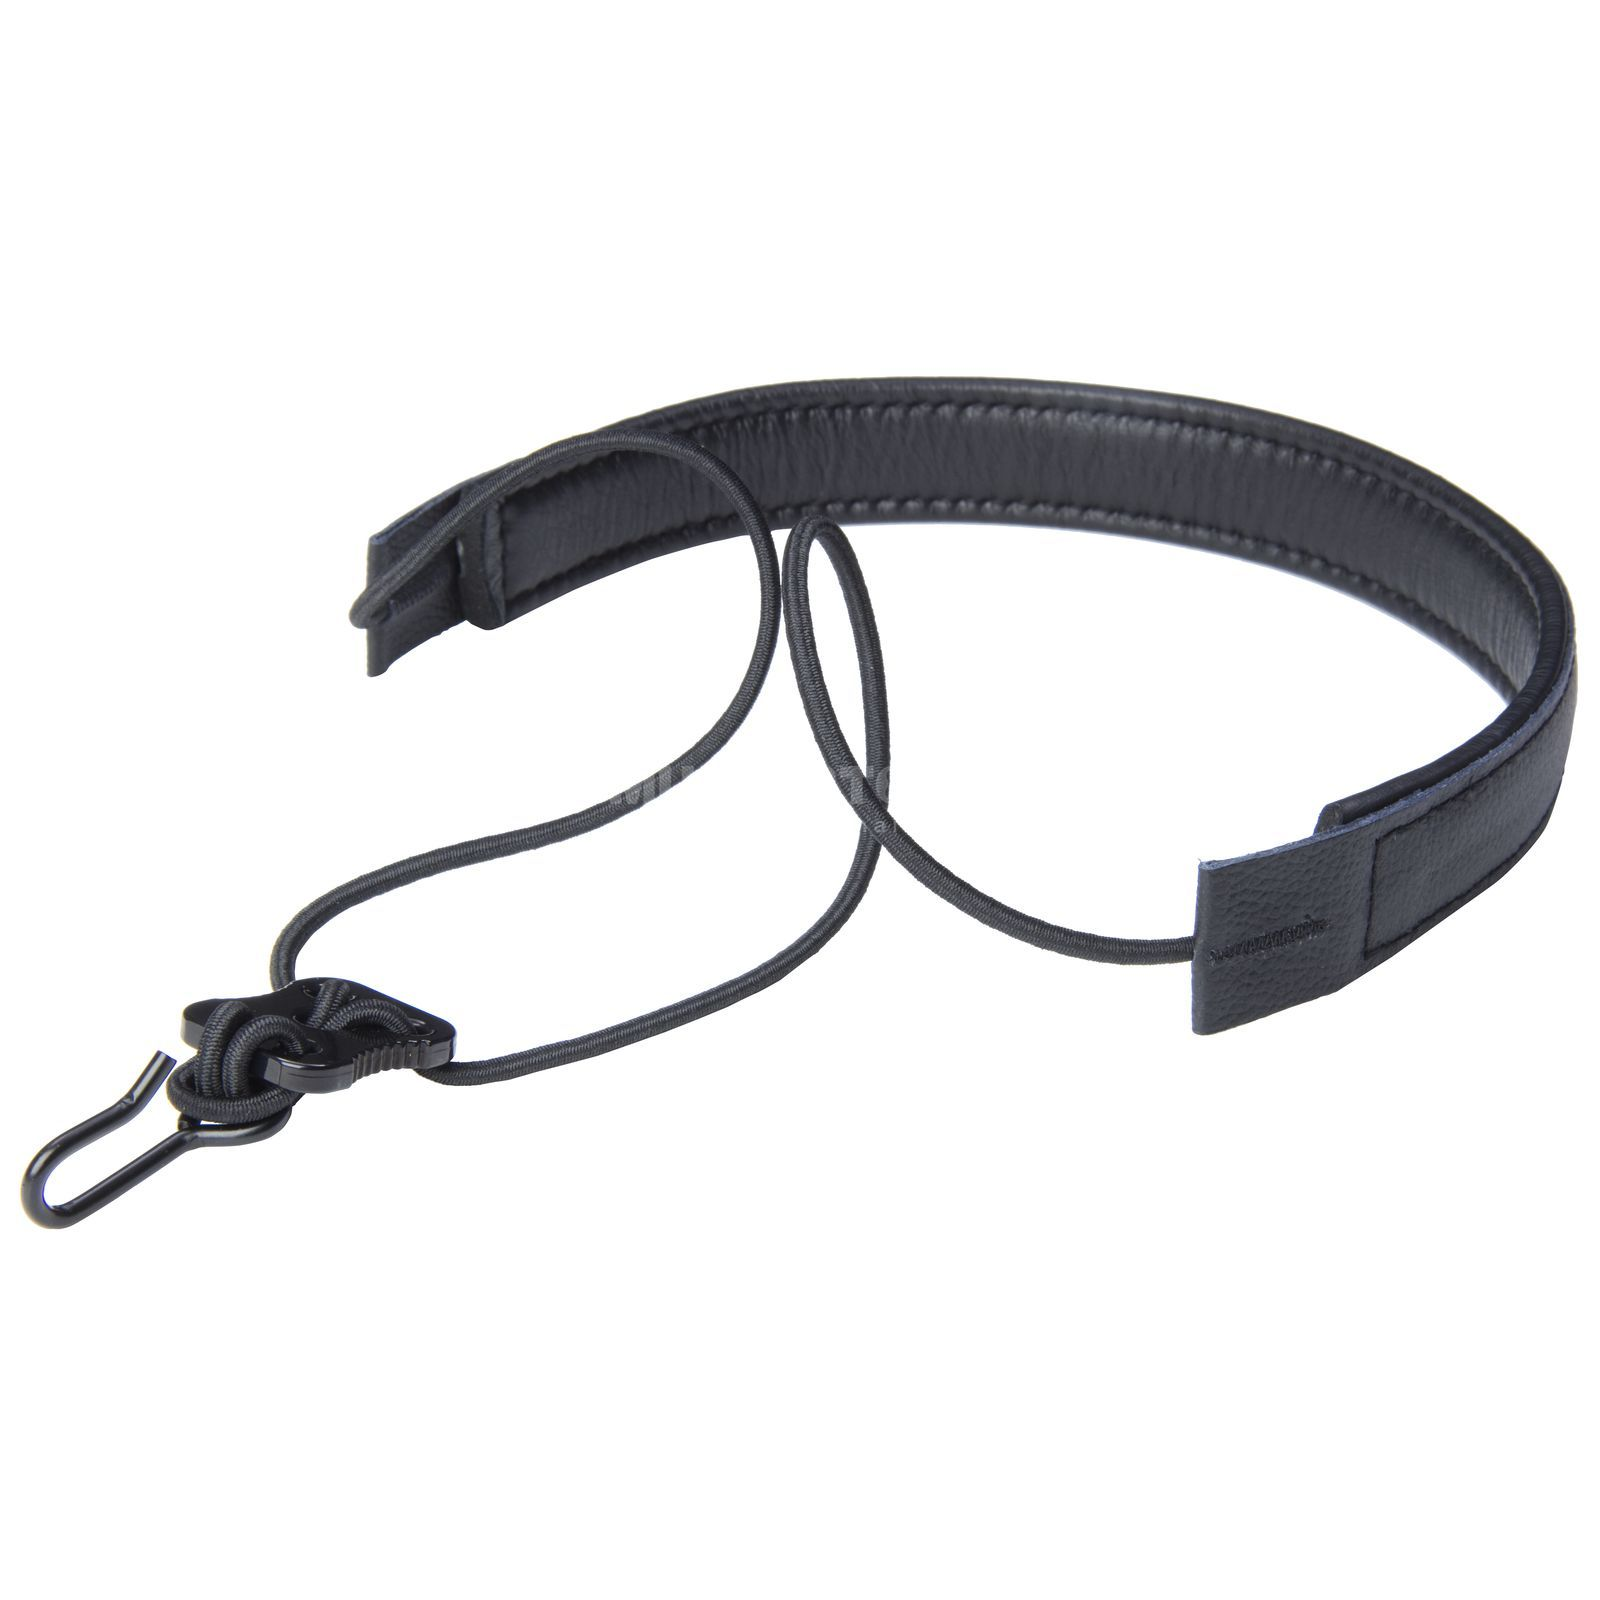 Monzani Elastic Strap f. Clarinet Cow Leather, Black Produktbillede